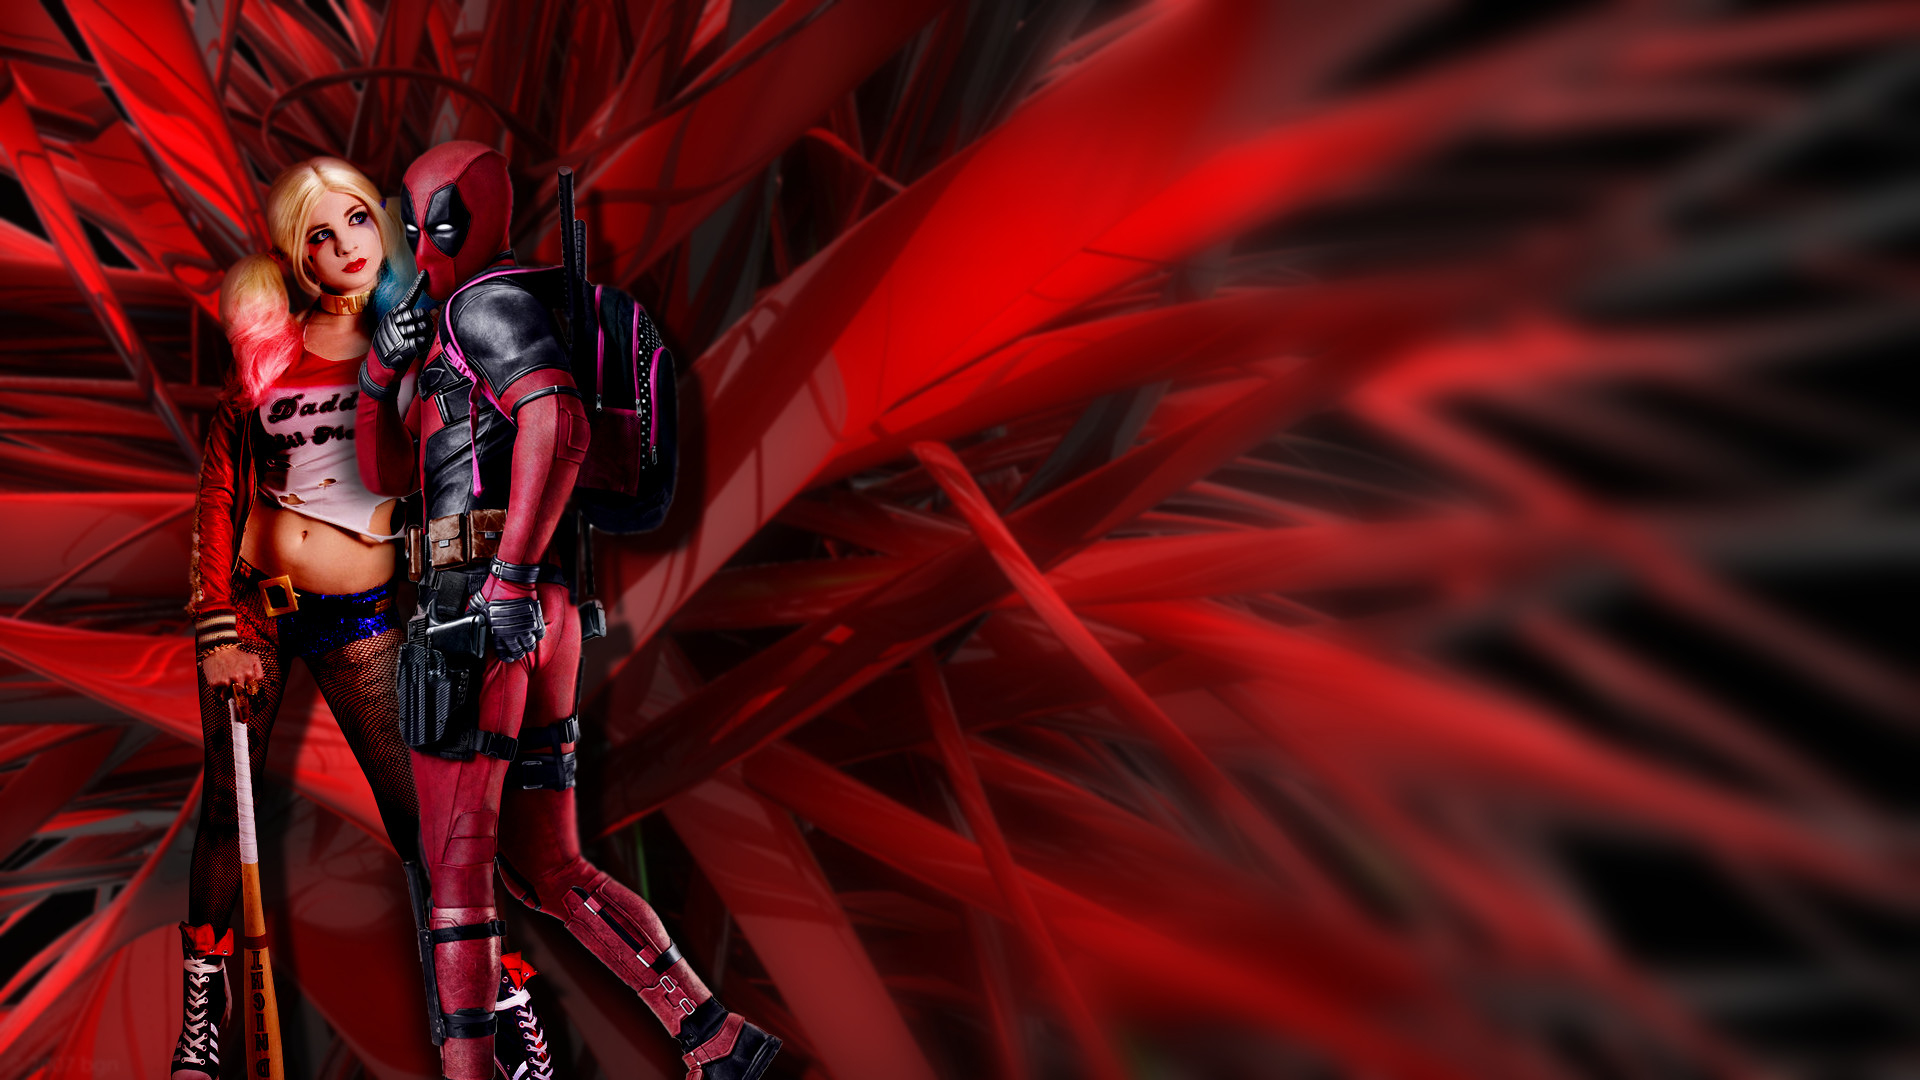 Deadpool And Harley Quinn Wallpaper (74+ Images